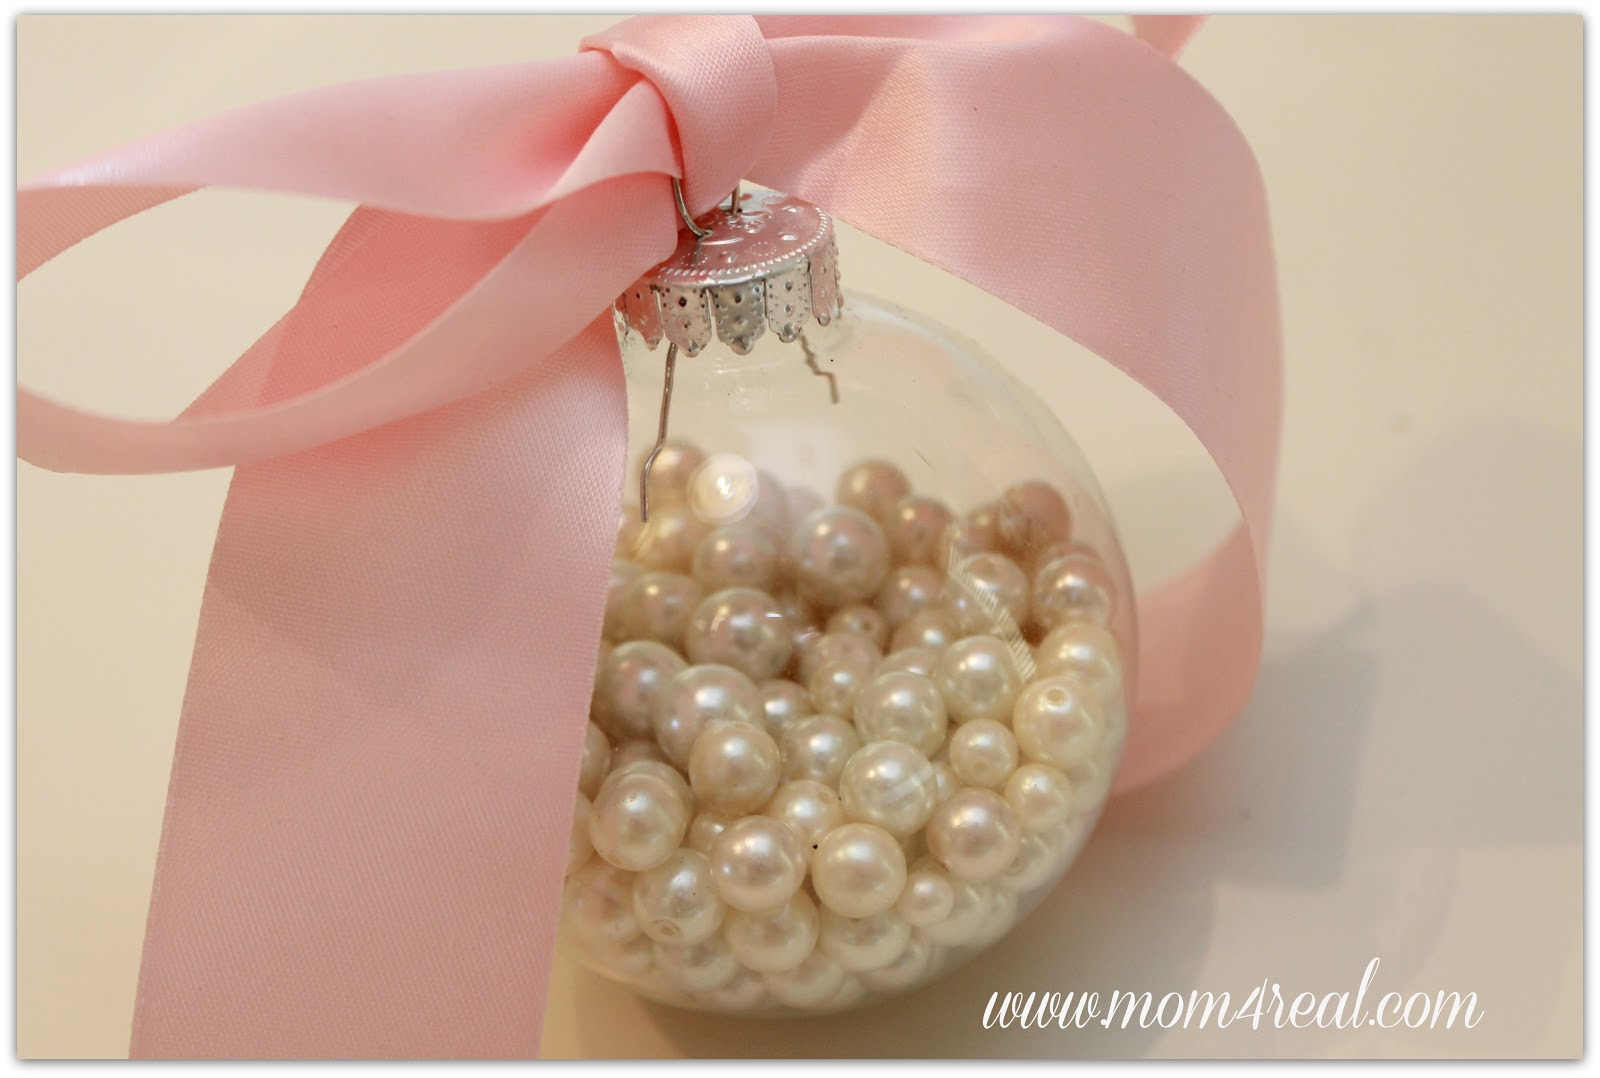 beautiful pearl glass ornament from mom 4 real - The Christmas Pearl